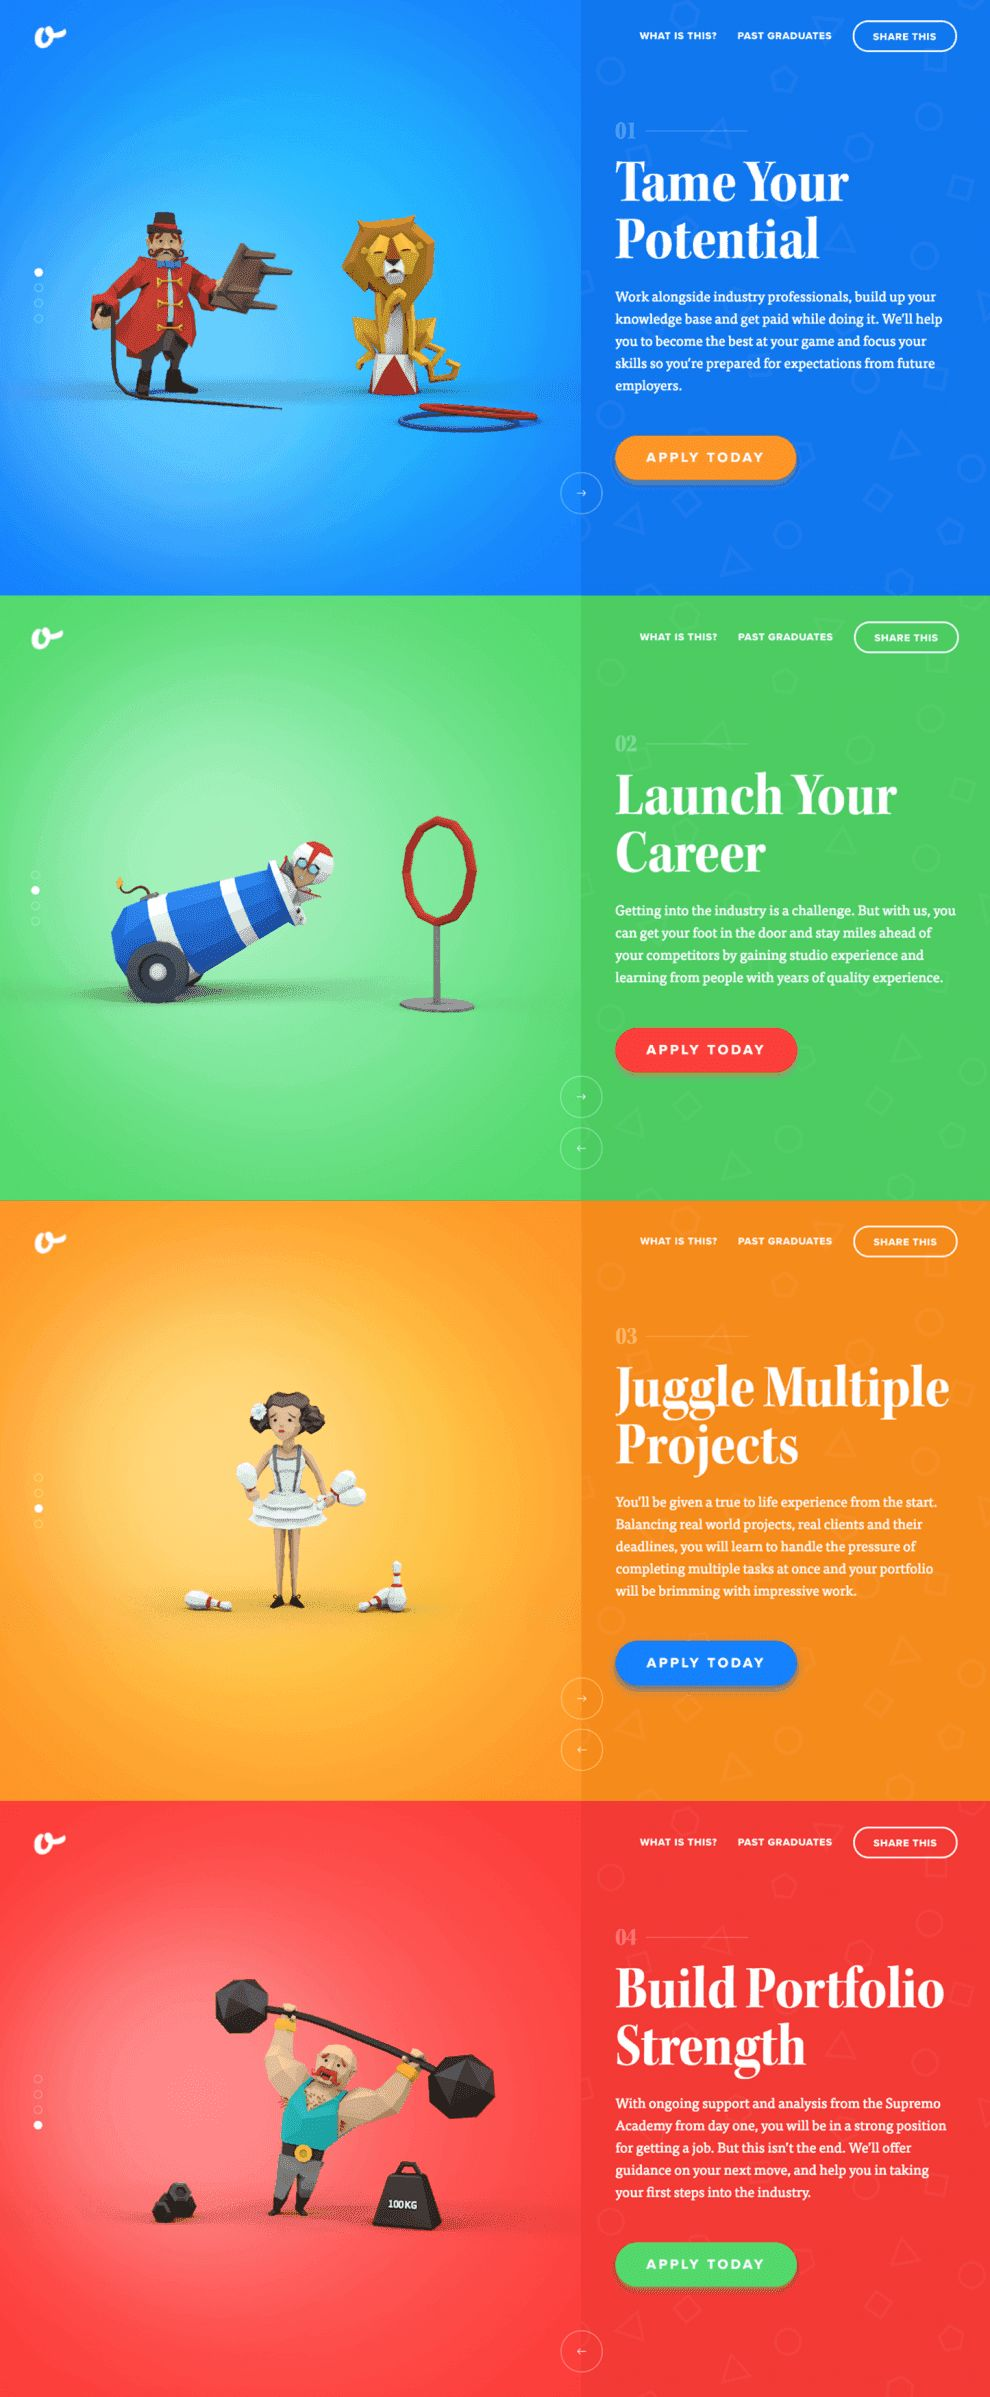 Supremo Academy's Illustrative Landing Page Creates An Intriguing User Experience (slide 2)